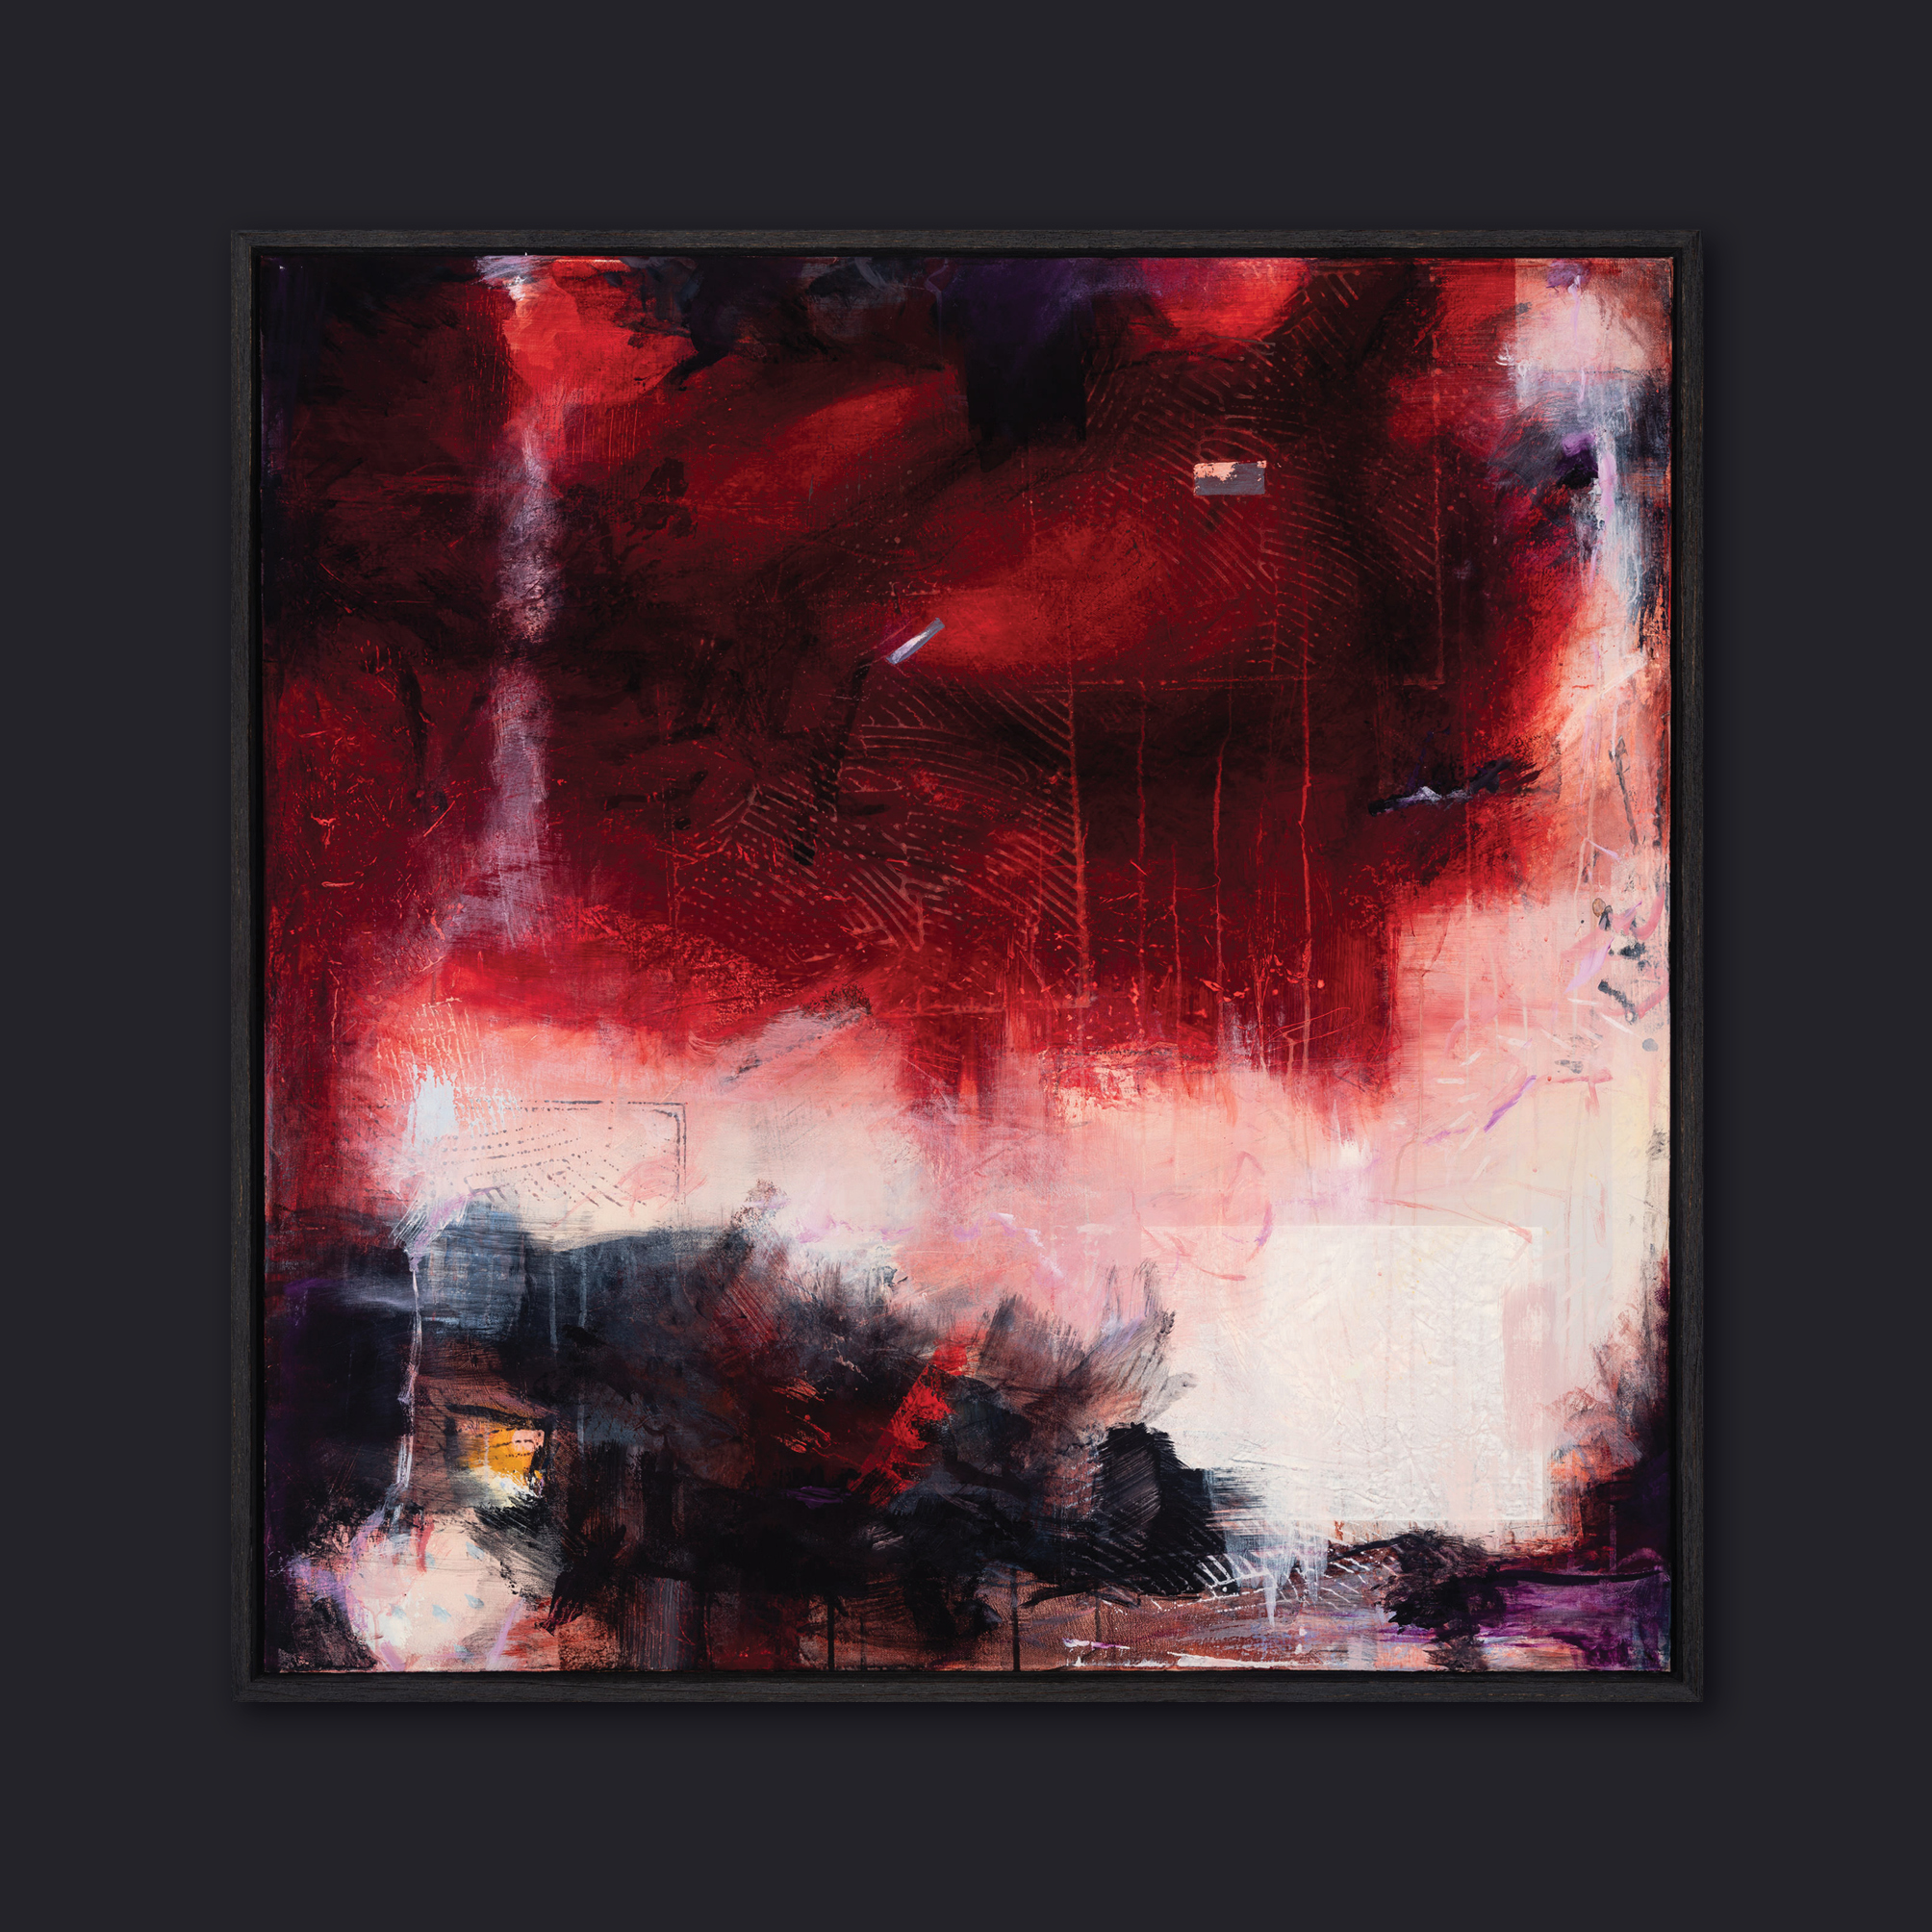 W101 x H101cm image size | acrylic mixed media on canvas in open grain, charcoal floating frame